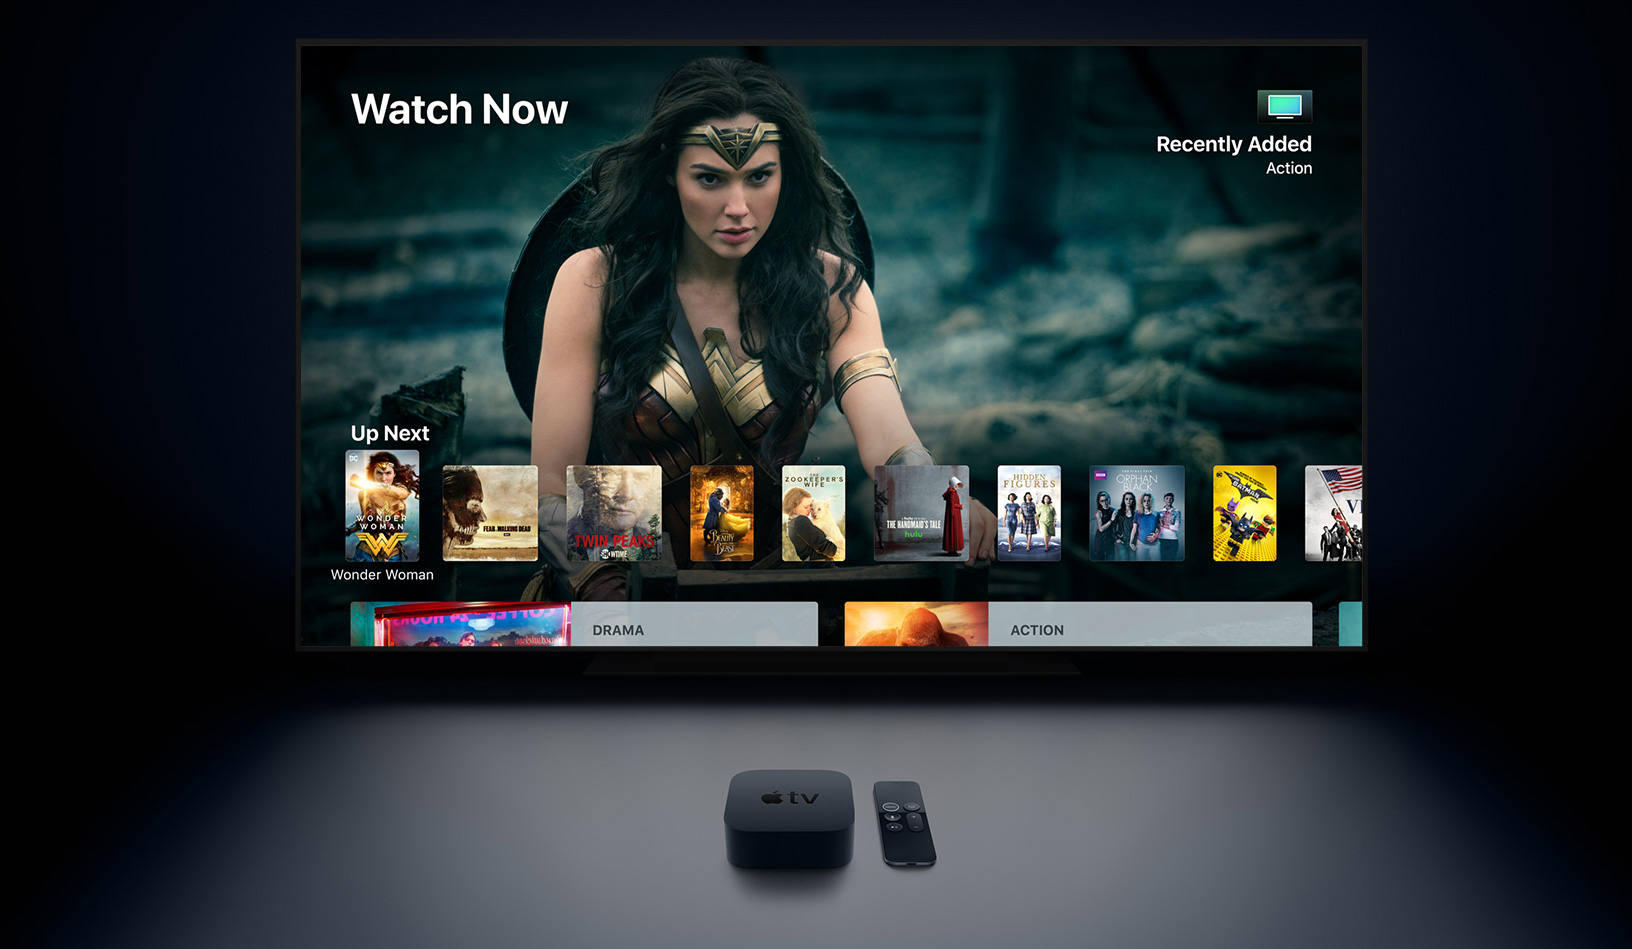 Apple's Upgraded TV App to Offer New Service Subscription Feature